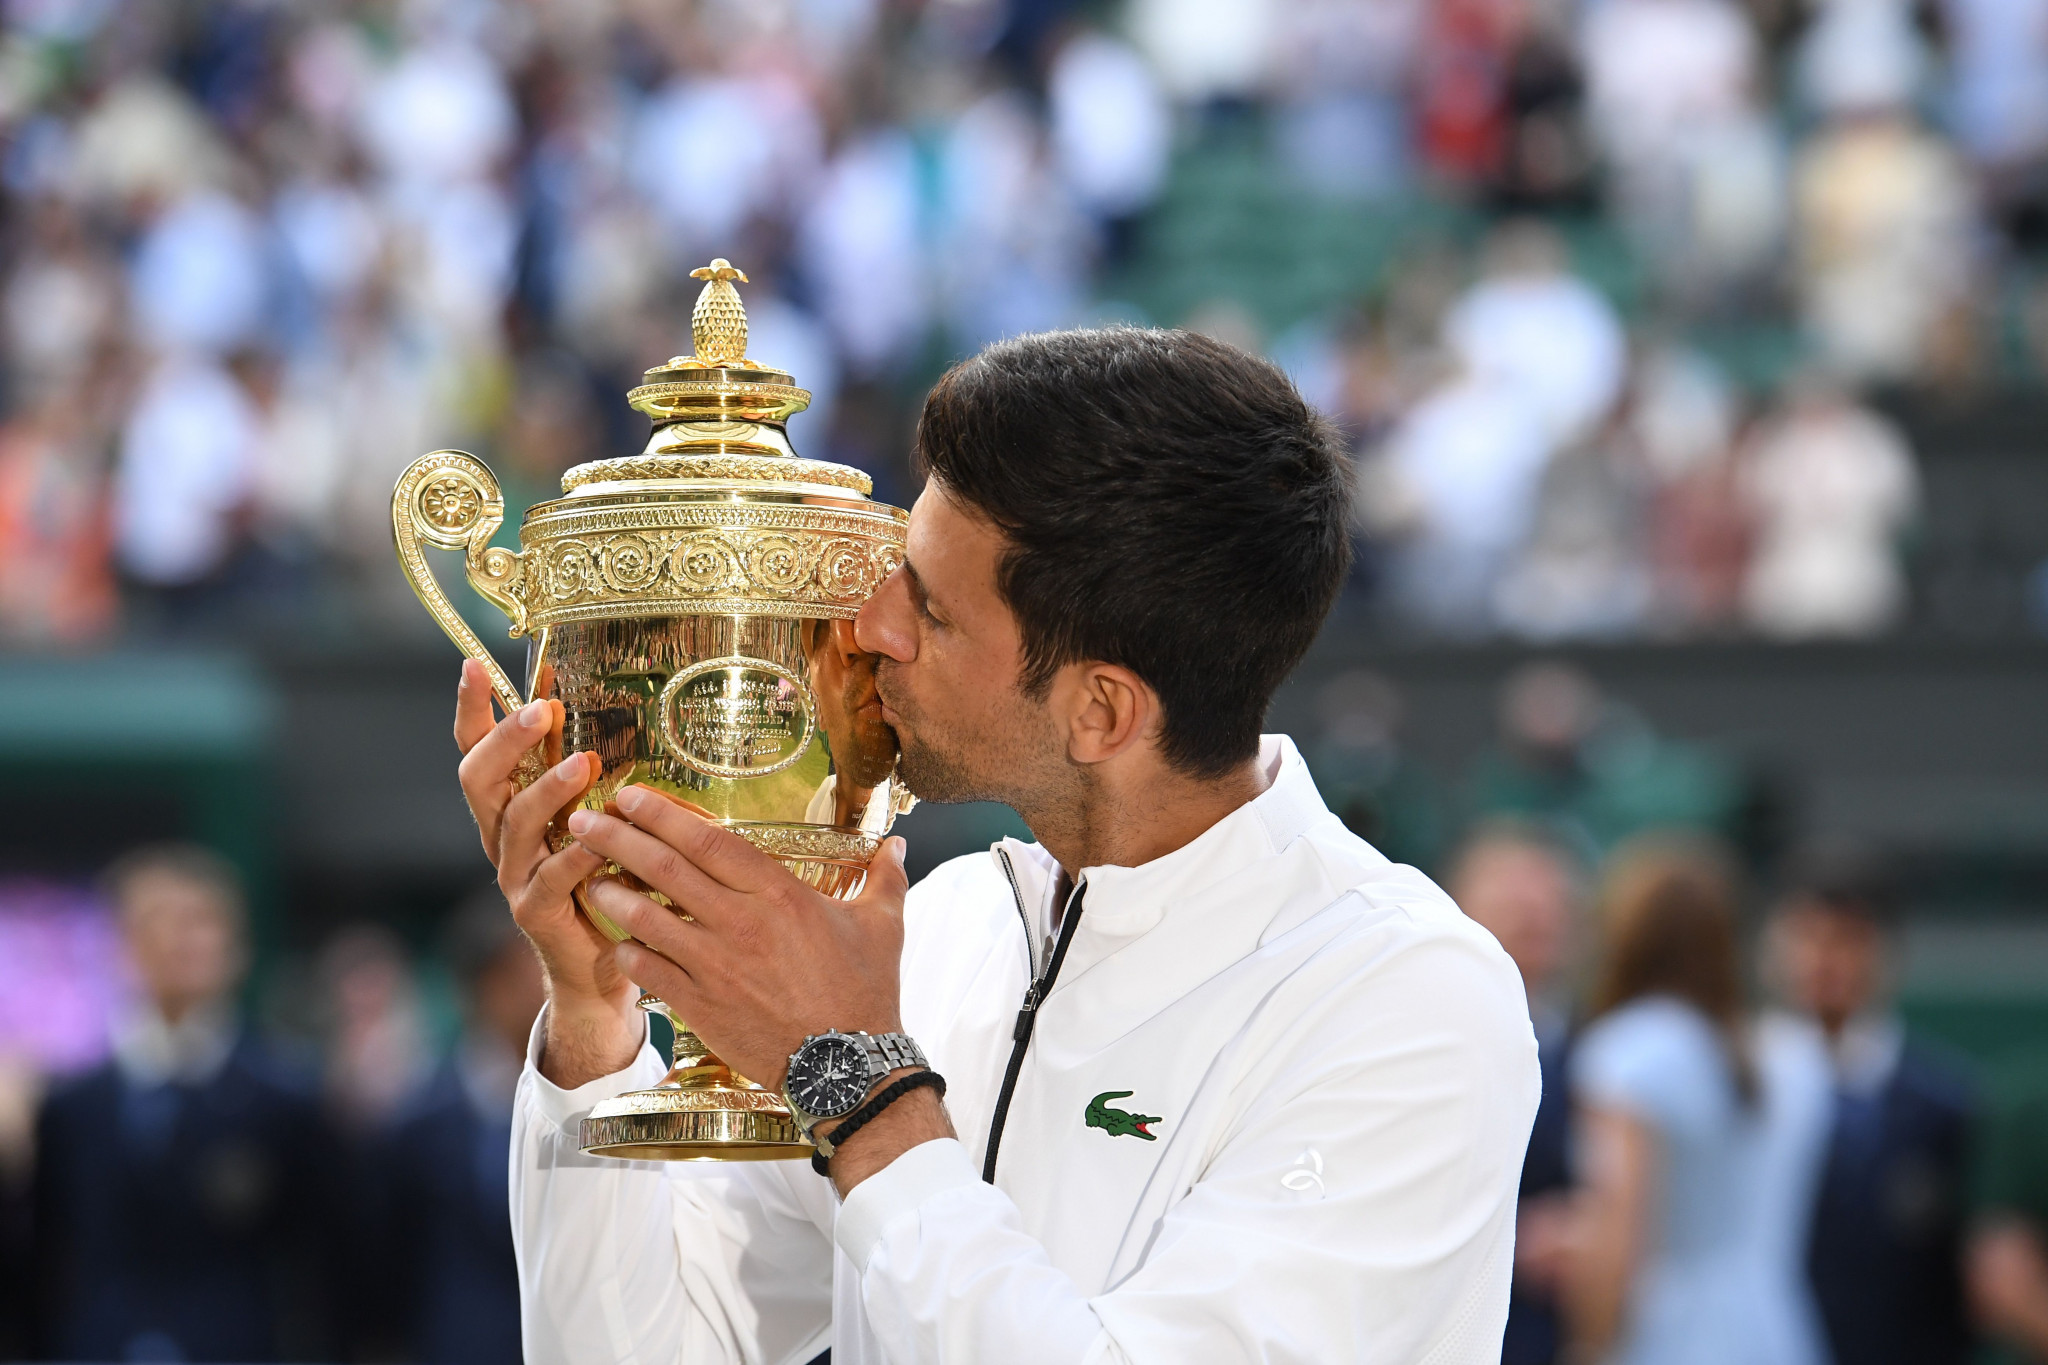 Djokovic and Federer serve up an all-time classic at Wimbledon